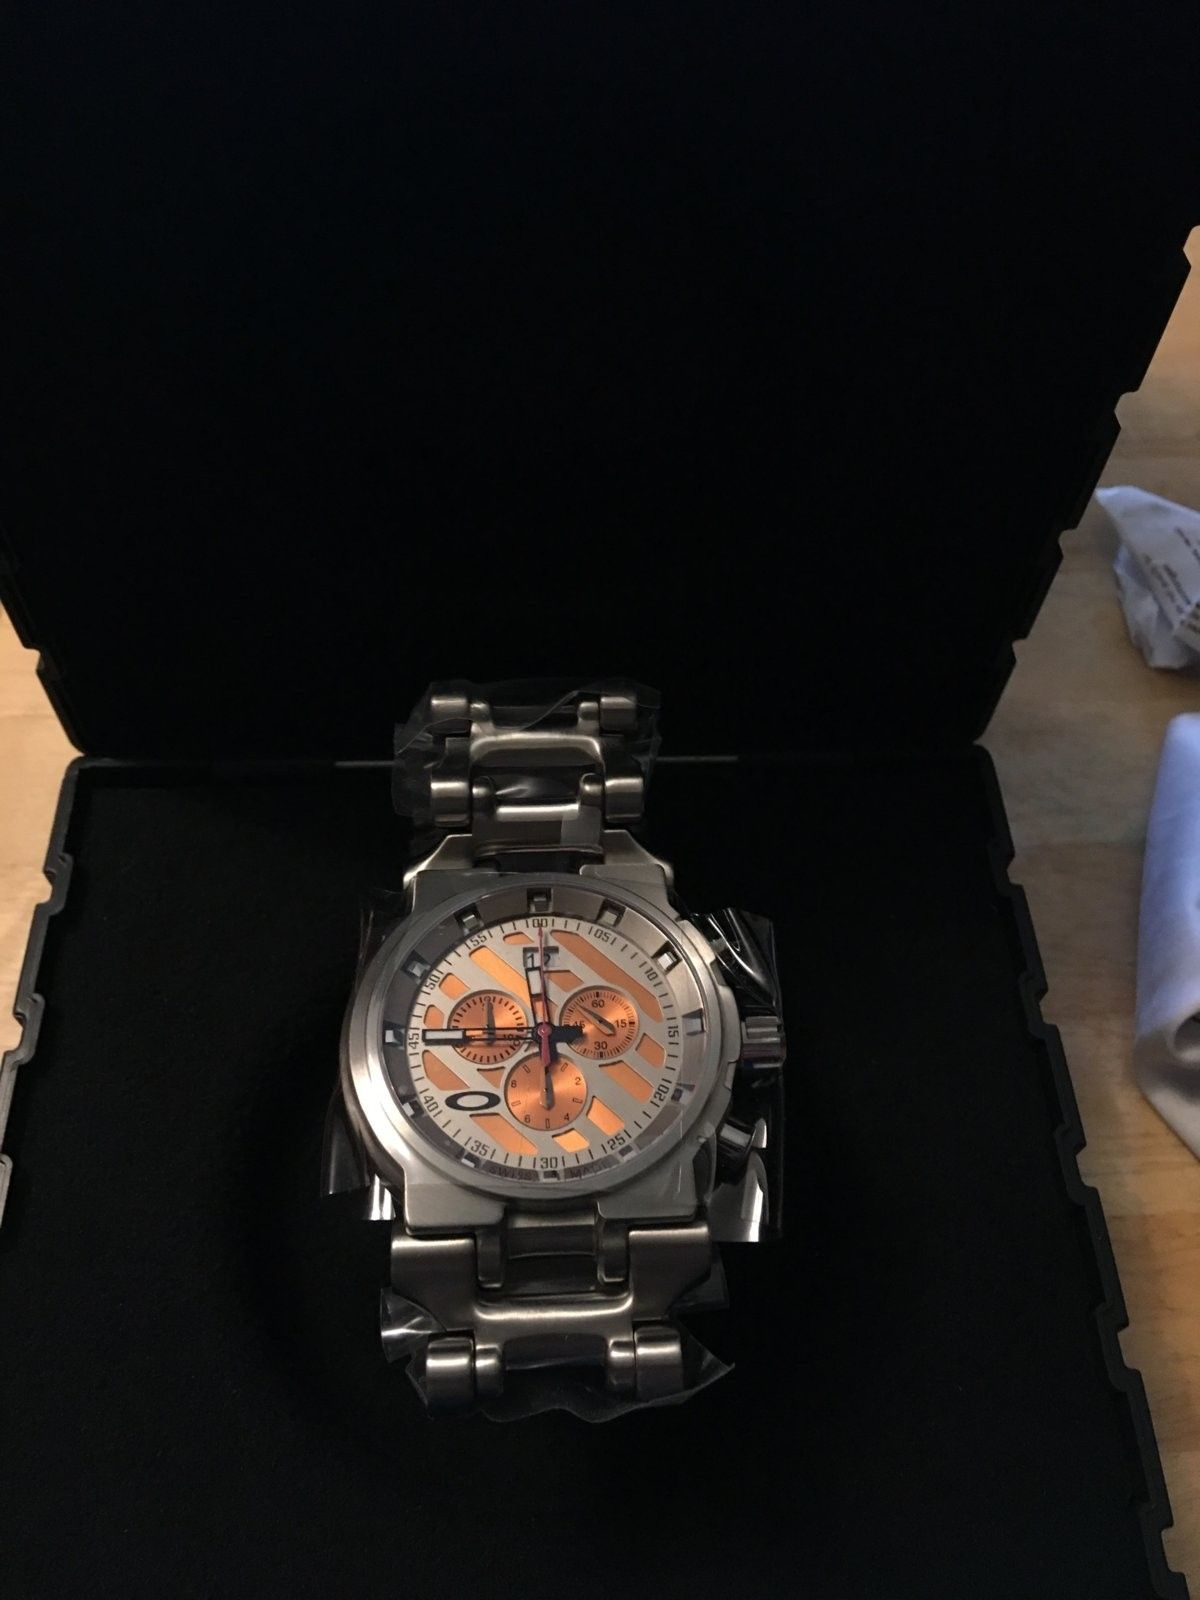 Well I added a new watch today!! - image.jpeg